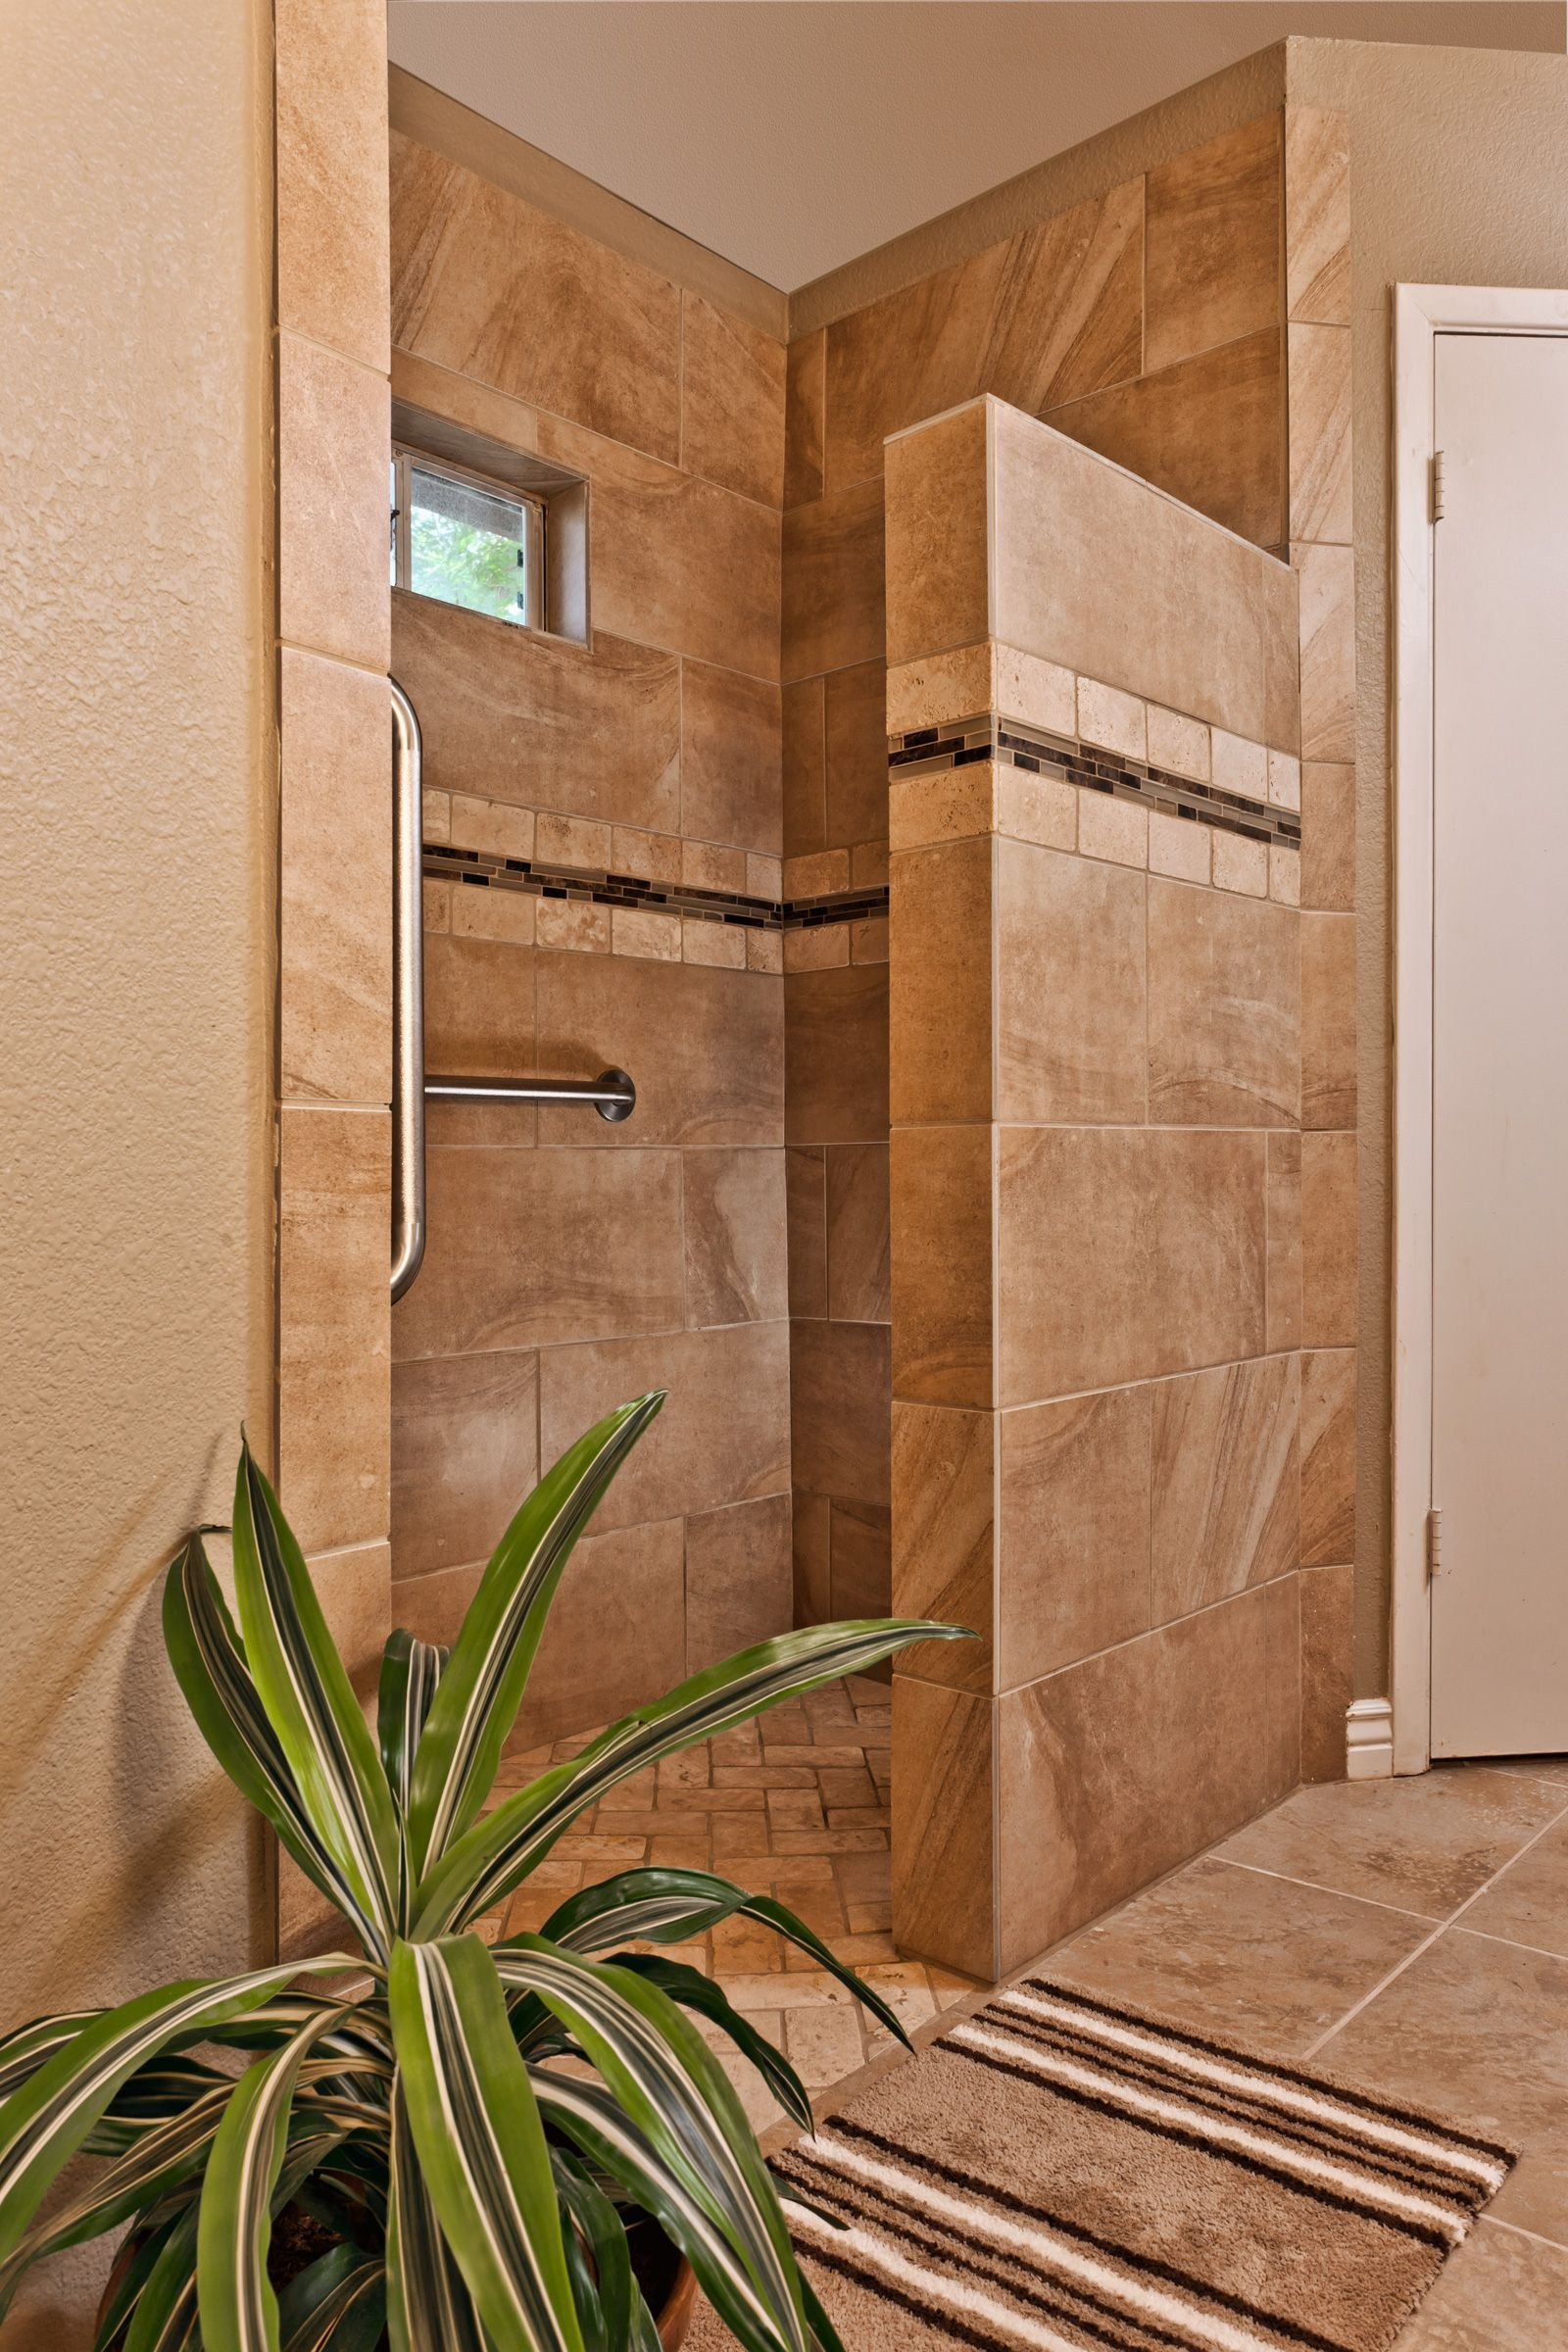 Tub To Shower Conversion Clear Choice Flooring And Design San Antonio Bathroom Remodel Shower Tub To Shower Conversion Bathrooms Remodel